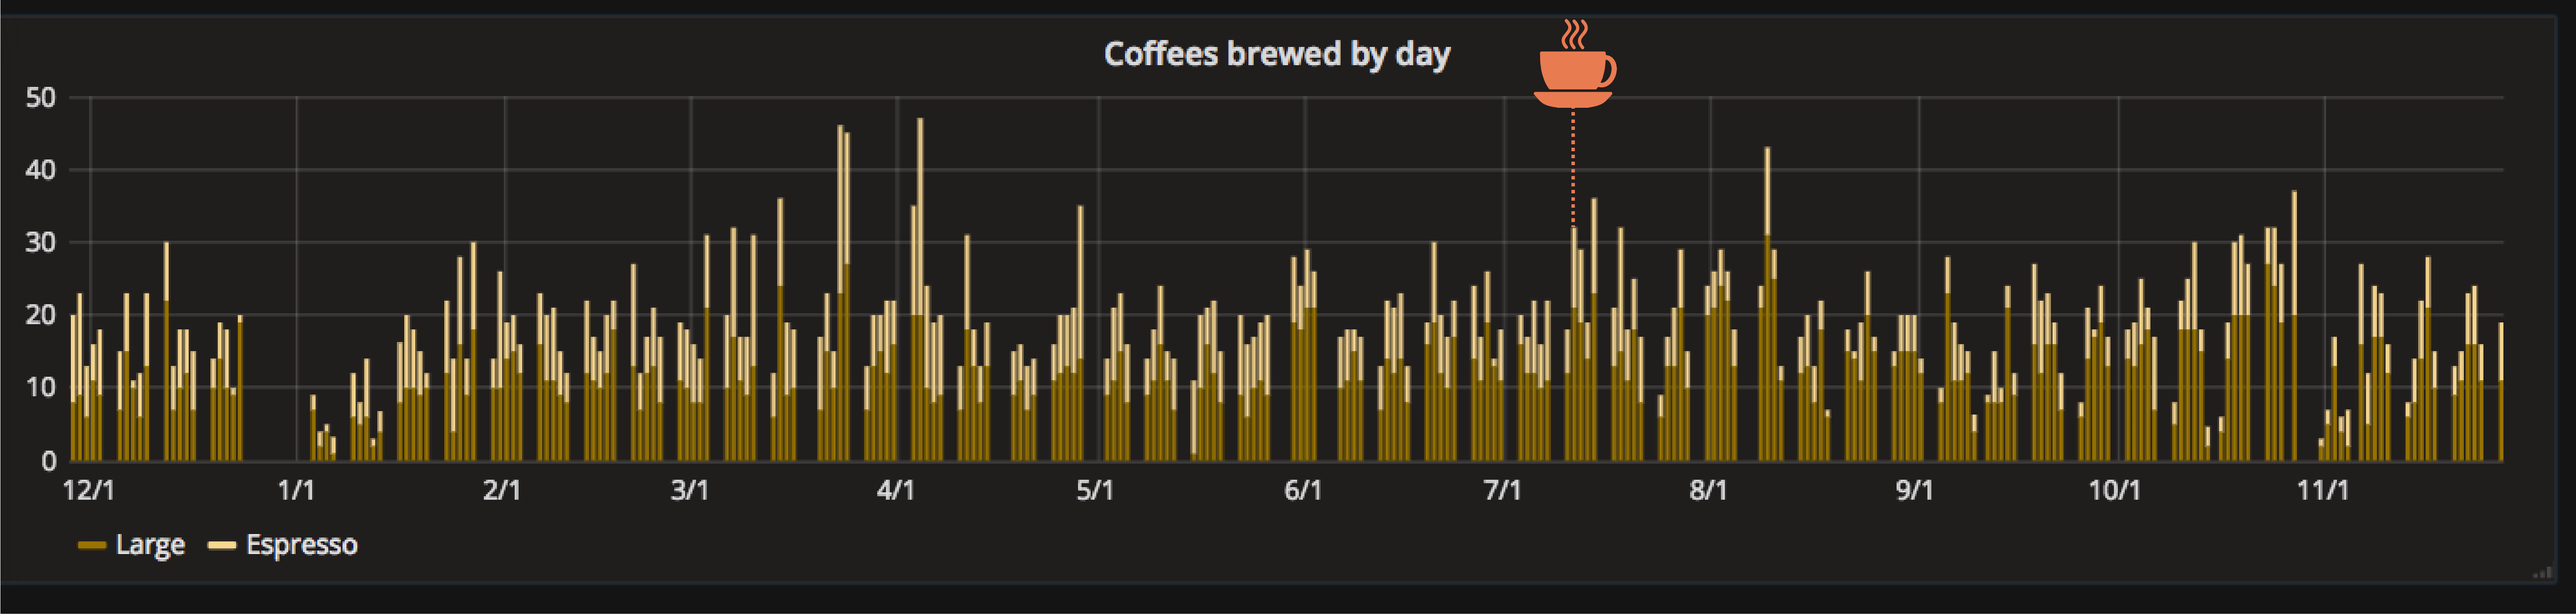 Coffees brewed by day bar chart